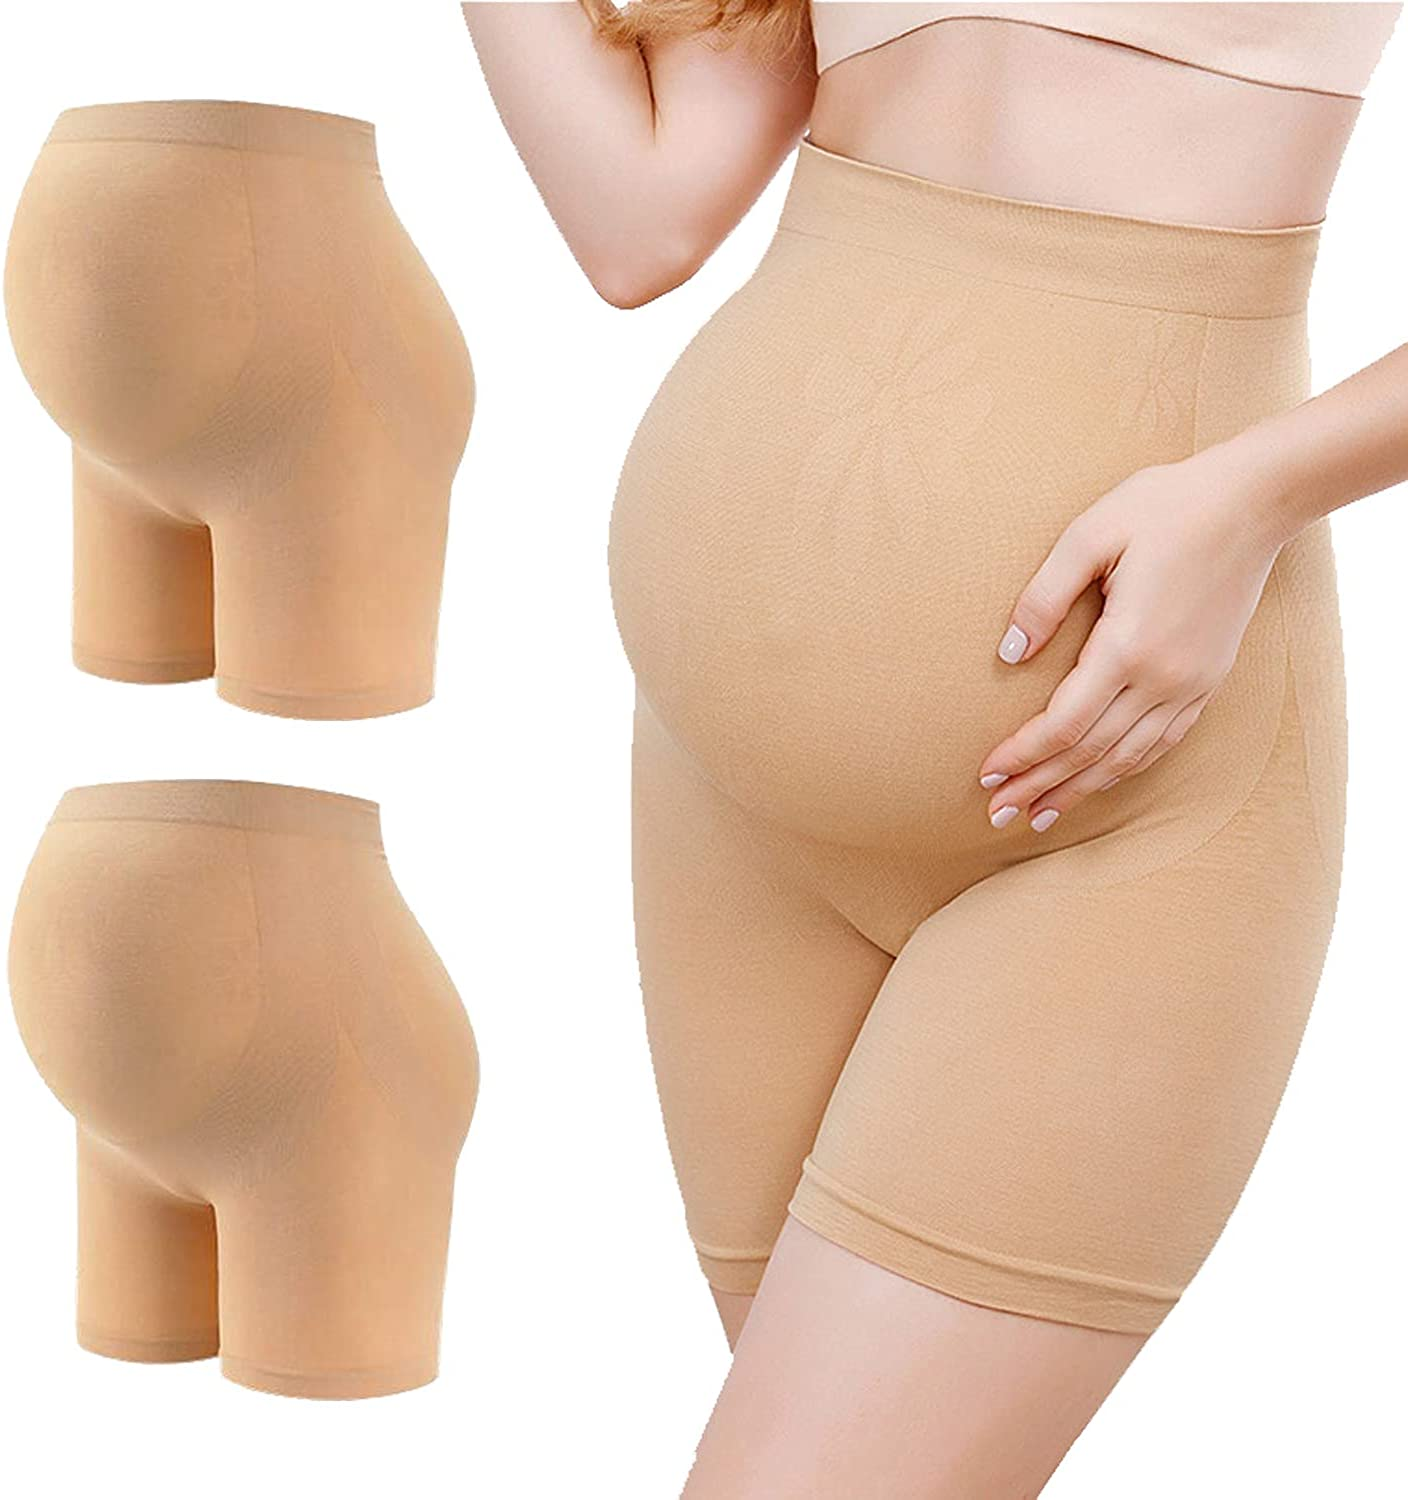 Fodlmeen Womens 2 Pack High Waist Mid-Thigh Pettipant Pregnancy Maternity Seamless Shapewear Underwear for Belly Support